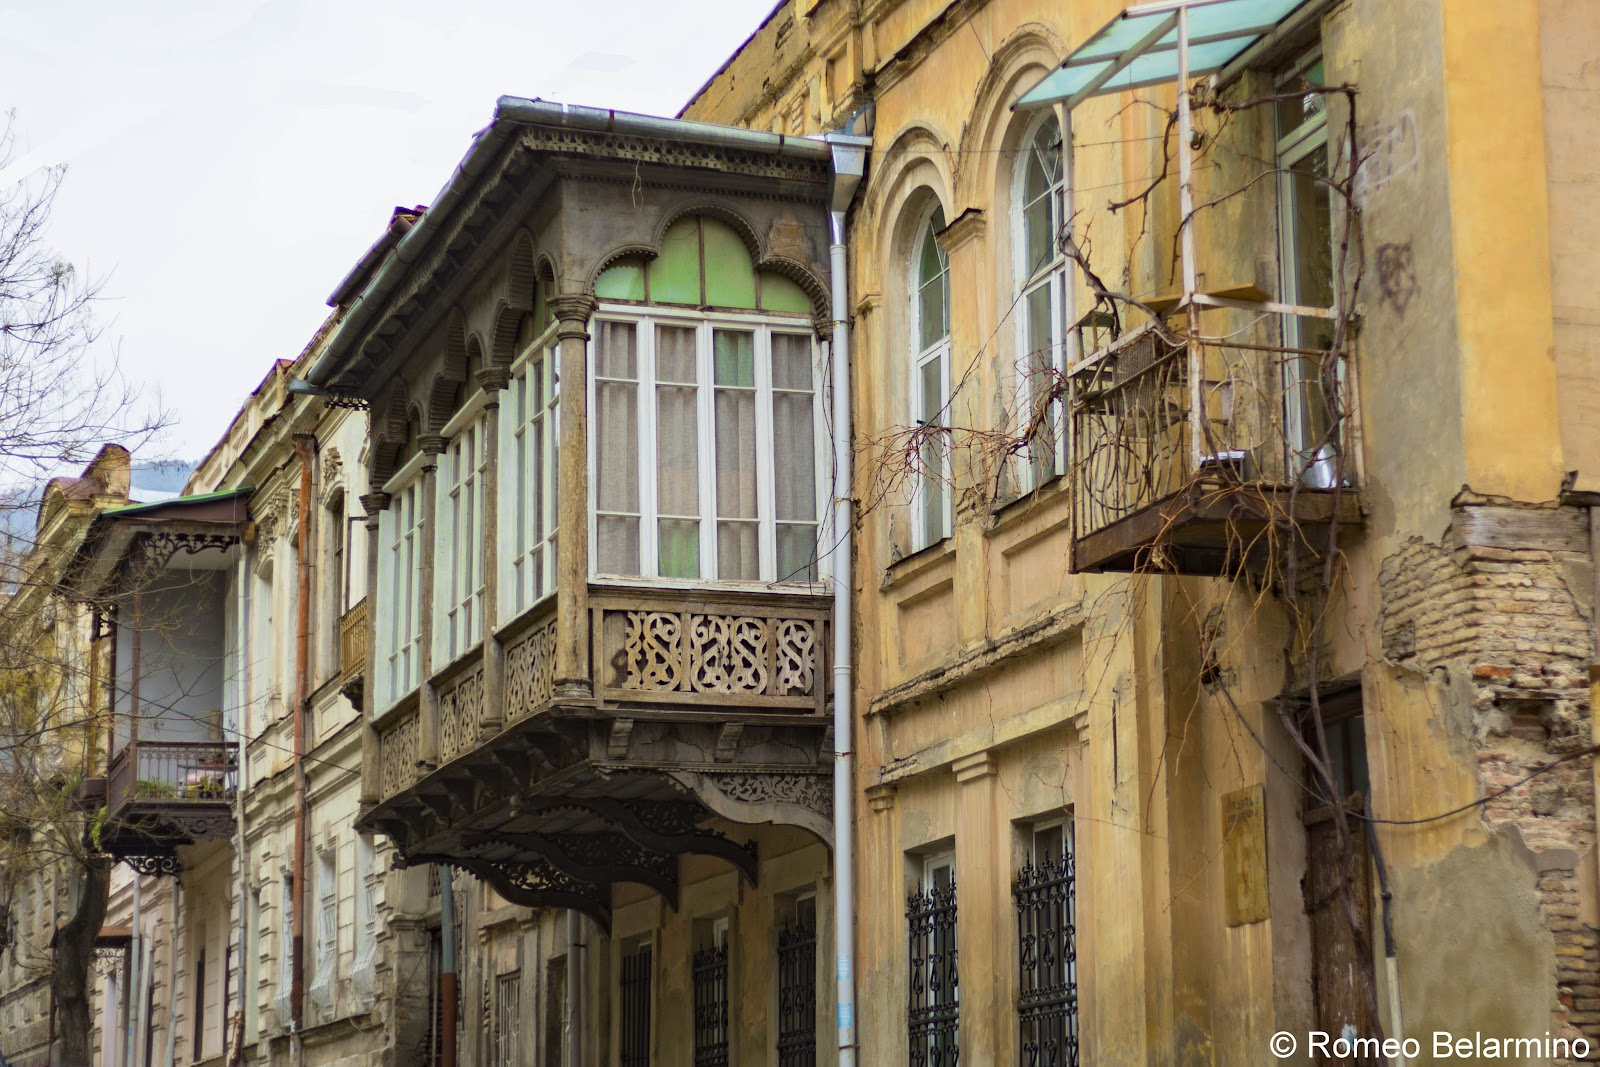 Old Tbilisi Walking Tour of Archite. & The Walking Tours of New Orleans | Travel the World pezcame.com